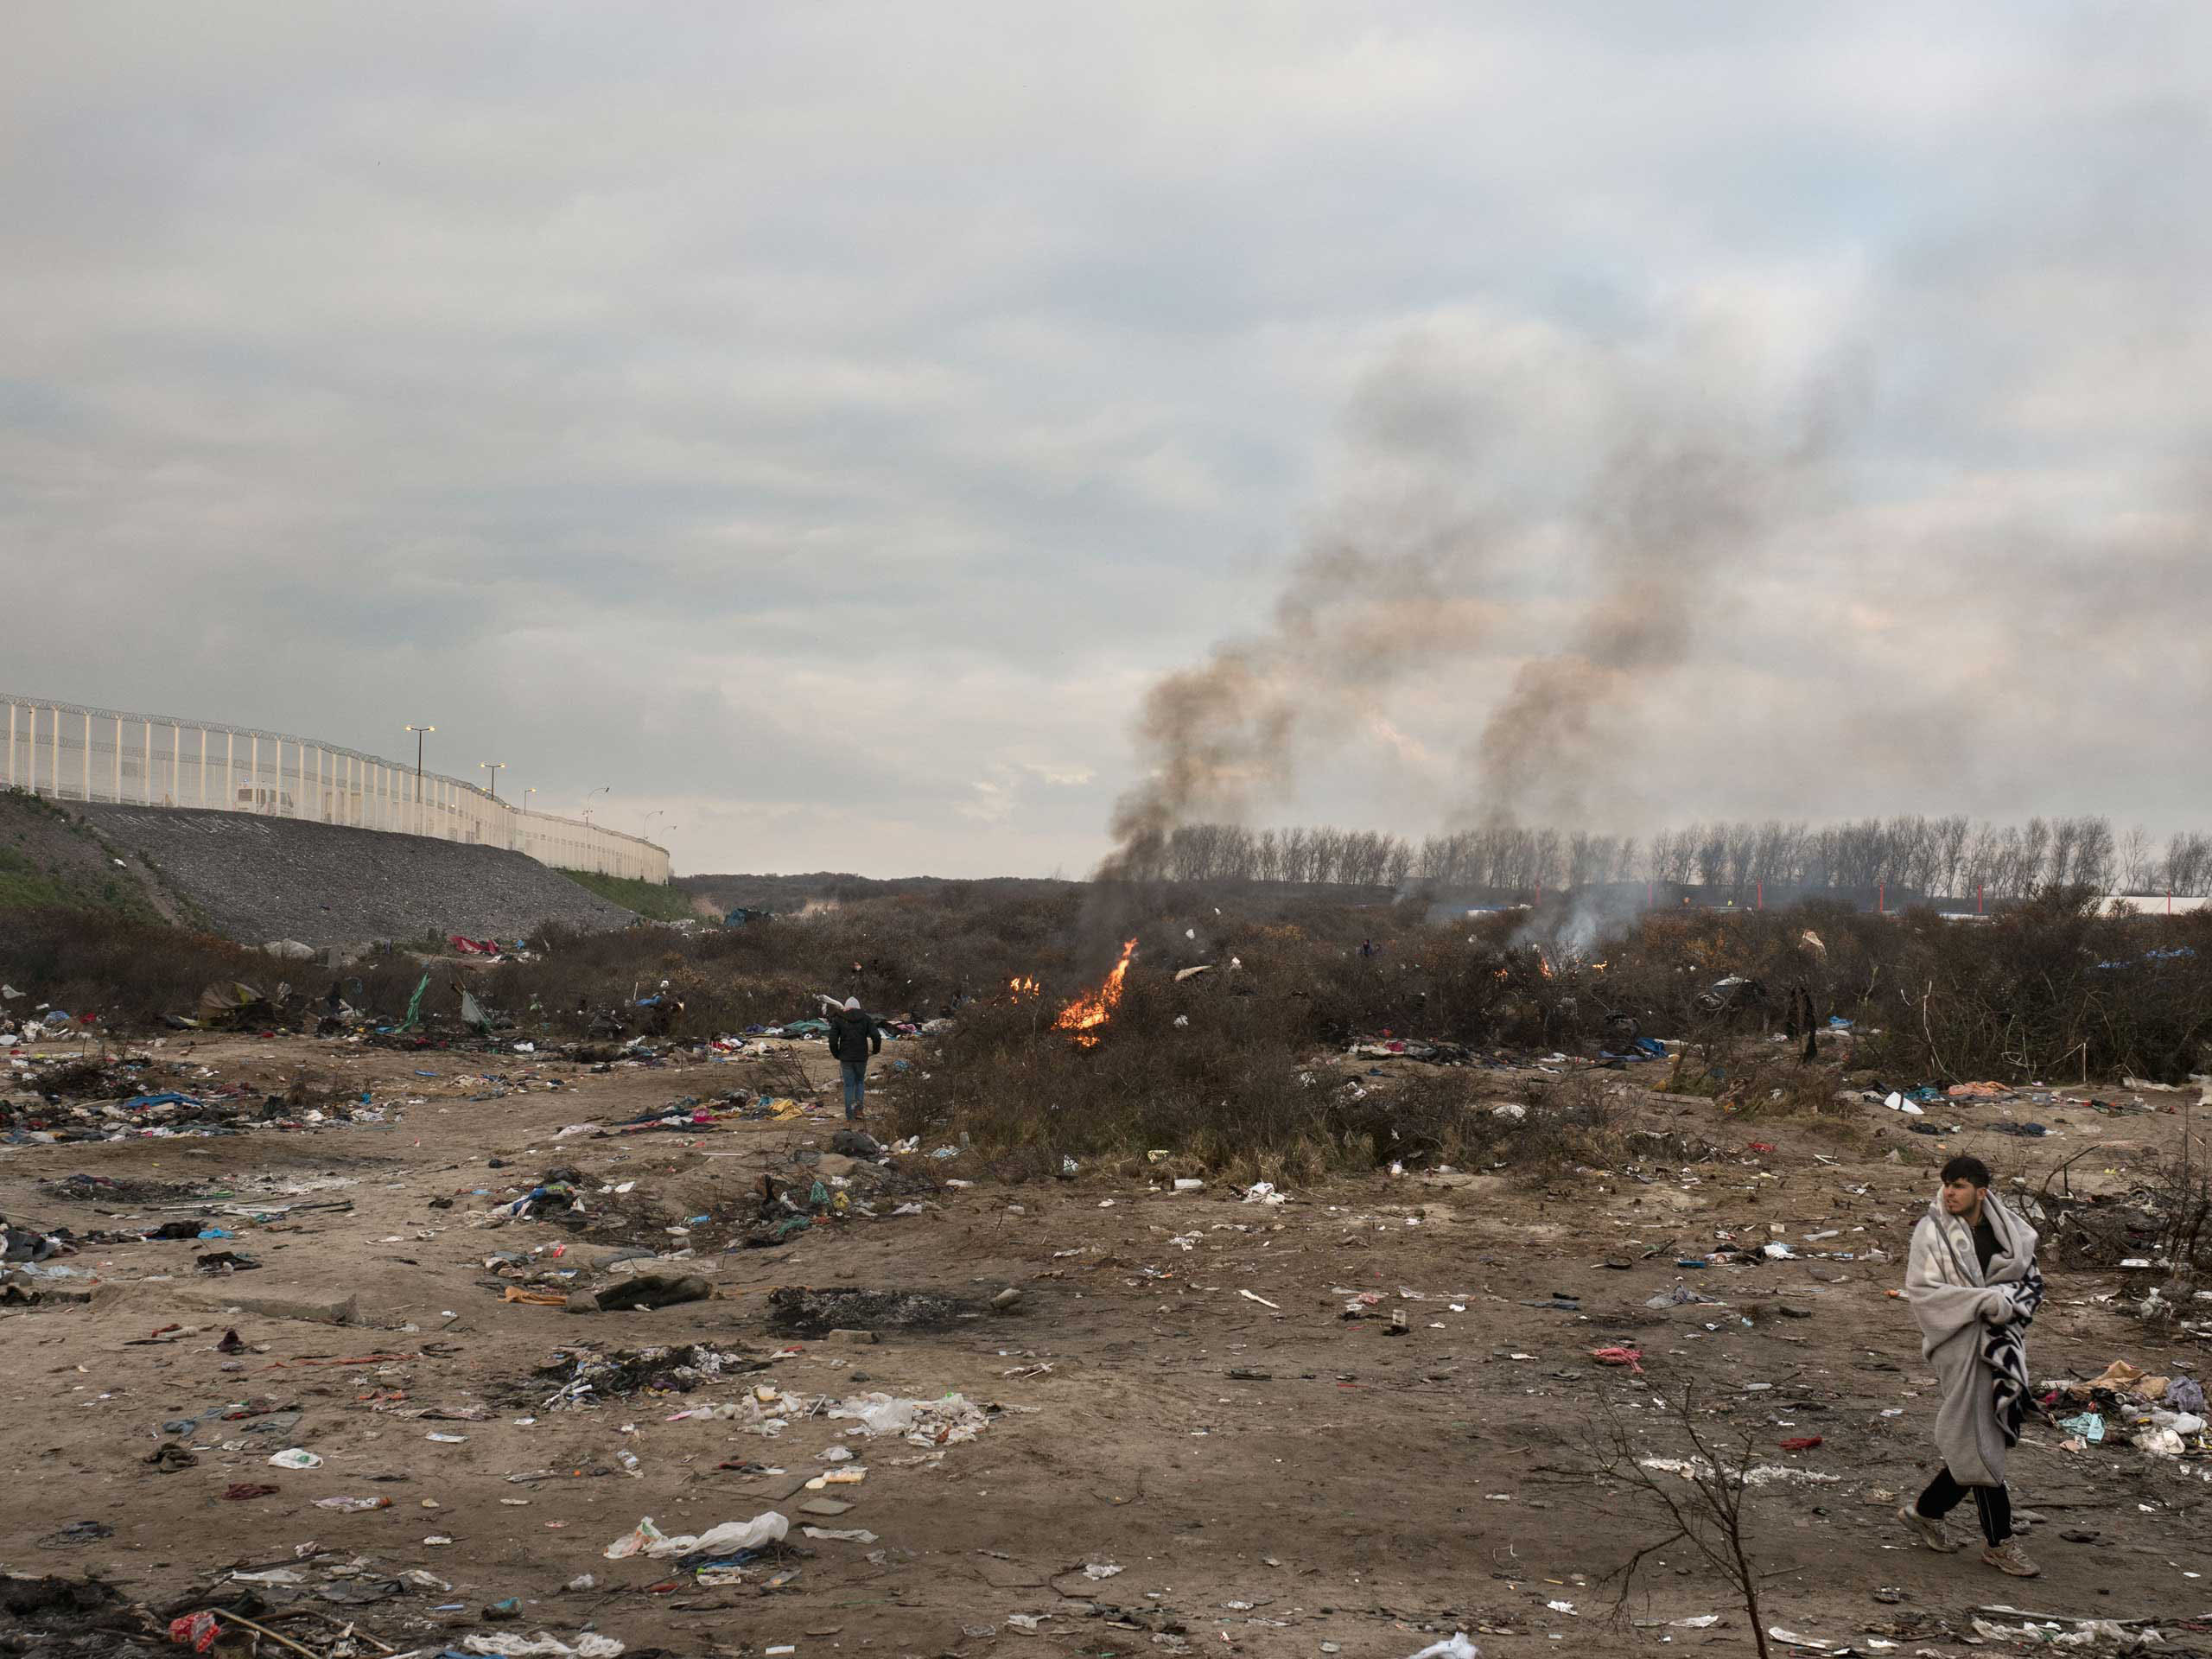 French authorities have begun to clean up the 'Jungle' of Calais, the shantytown near Calais city, where migrants live before they attempt to enter the United Kingdom, Jan. 20, 2016.